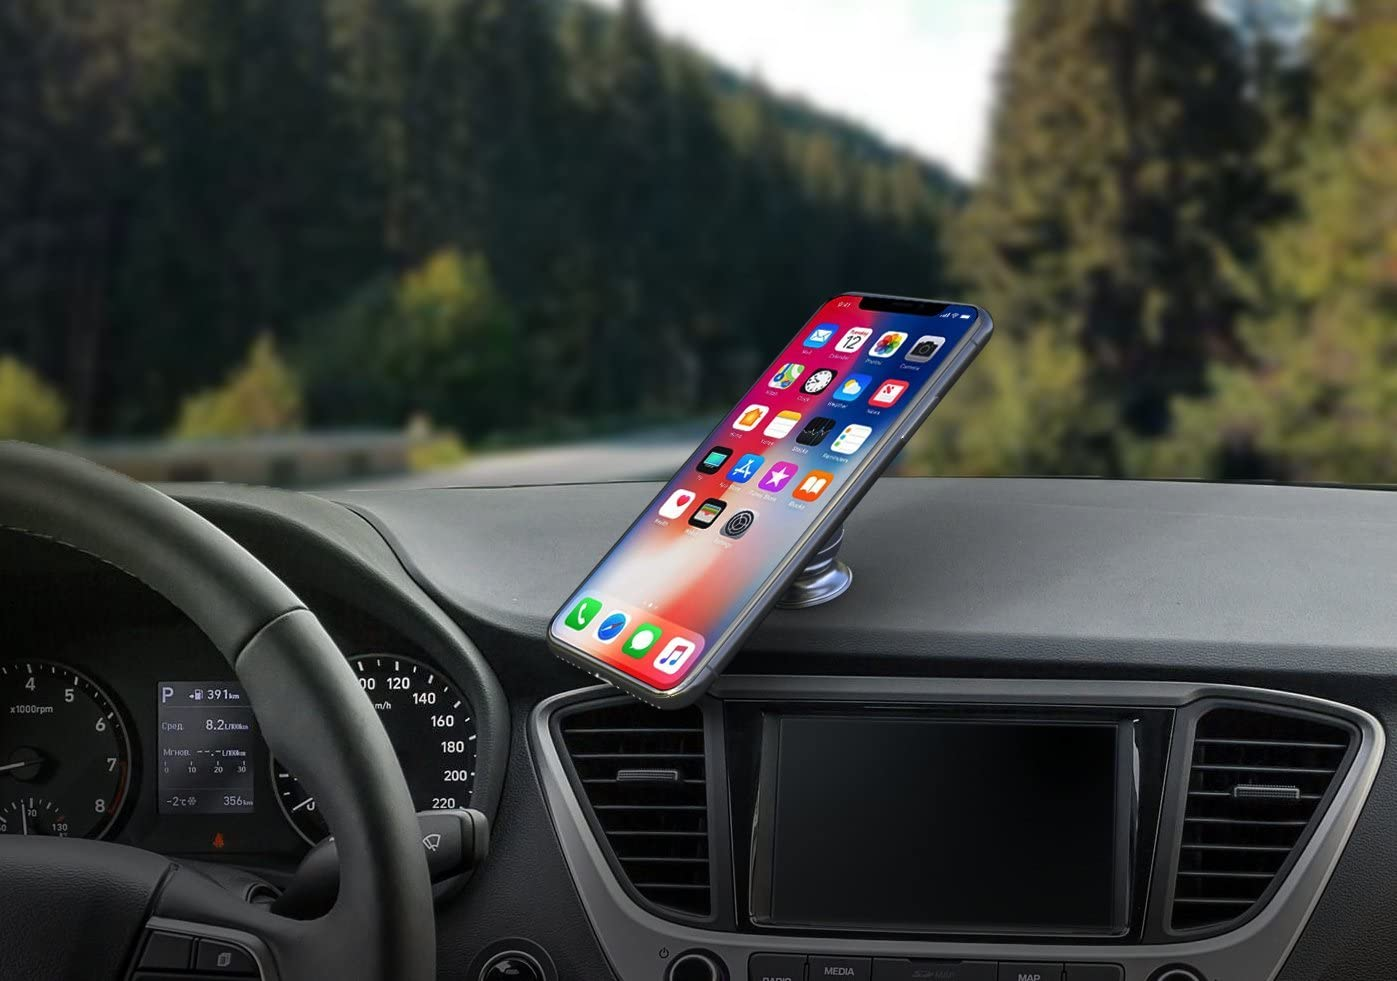 Foster Gadgets Magnetic Phone Holder for Car Dashboard Car Phone Mount with a Super Strong Magnet